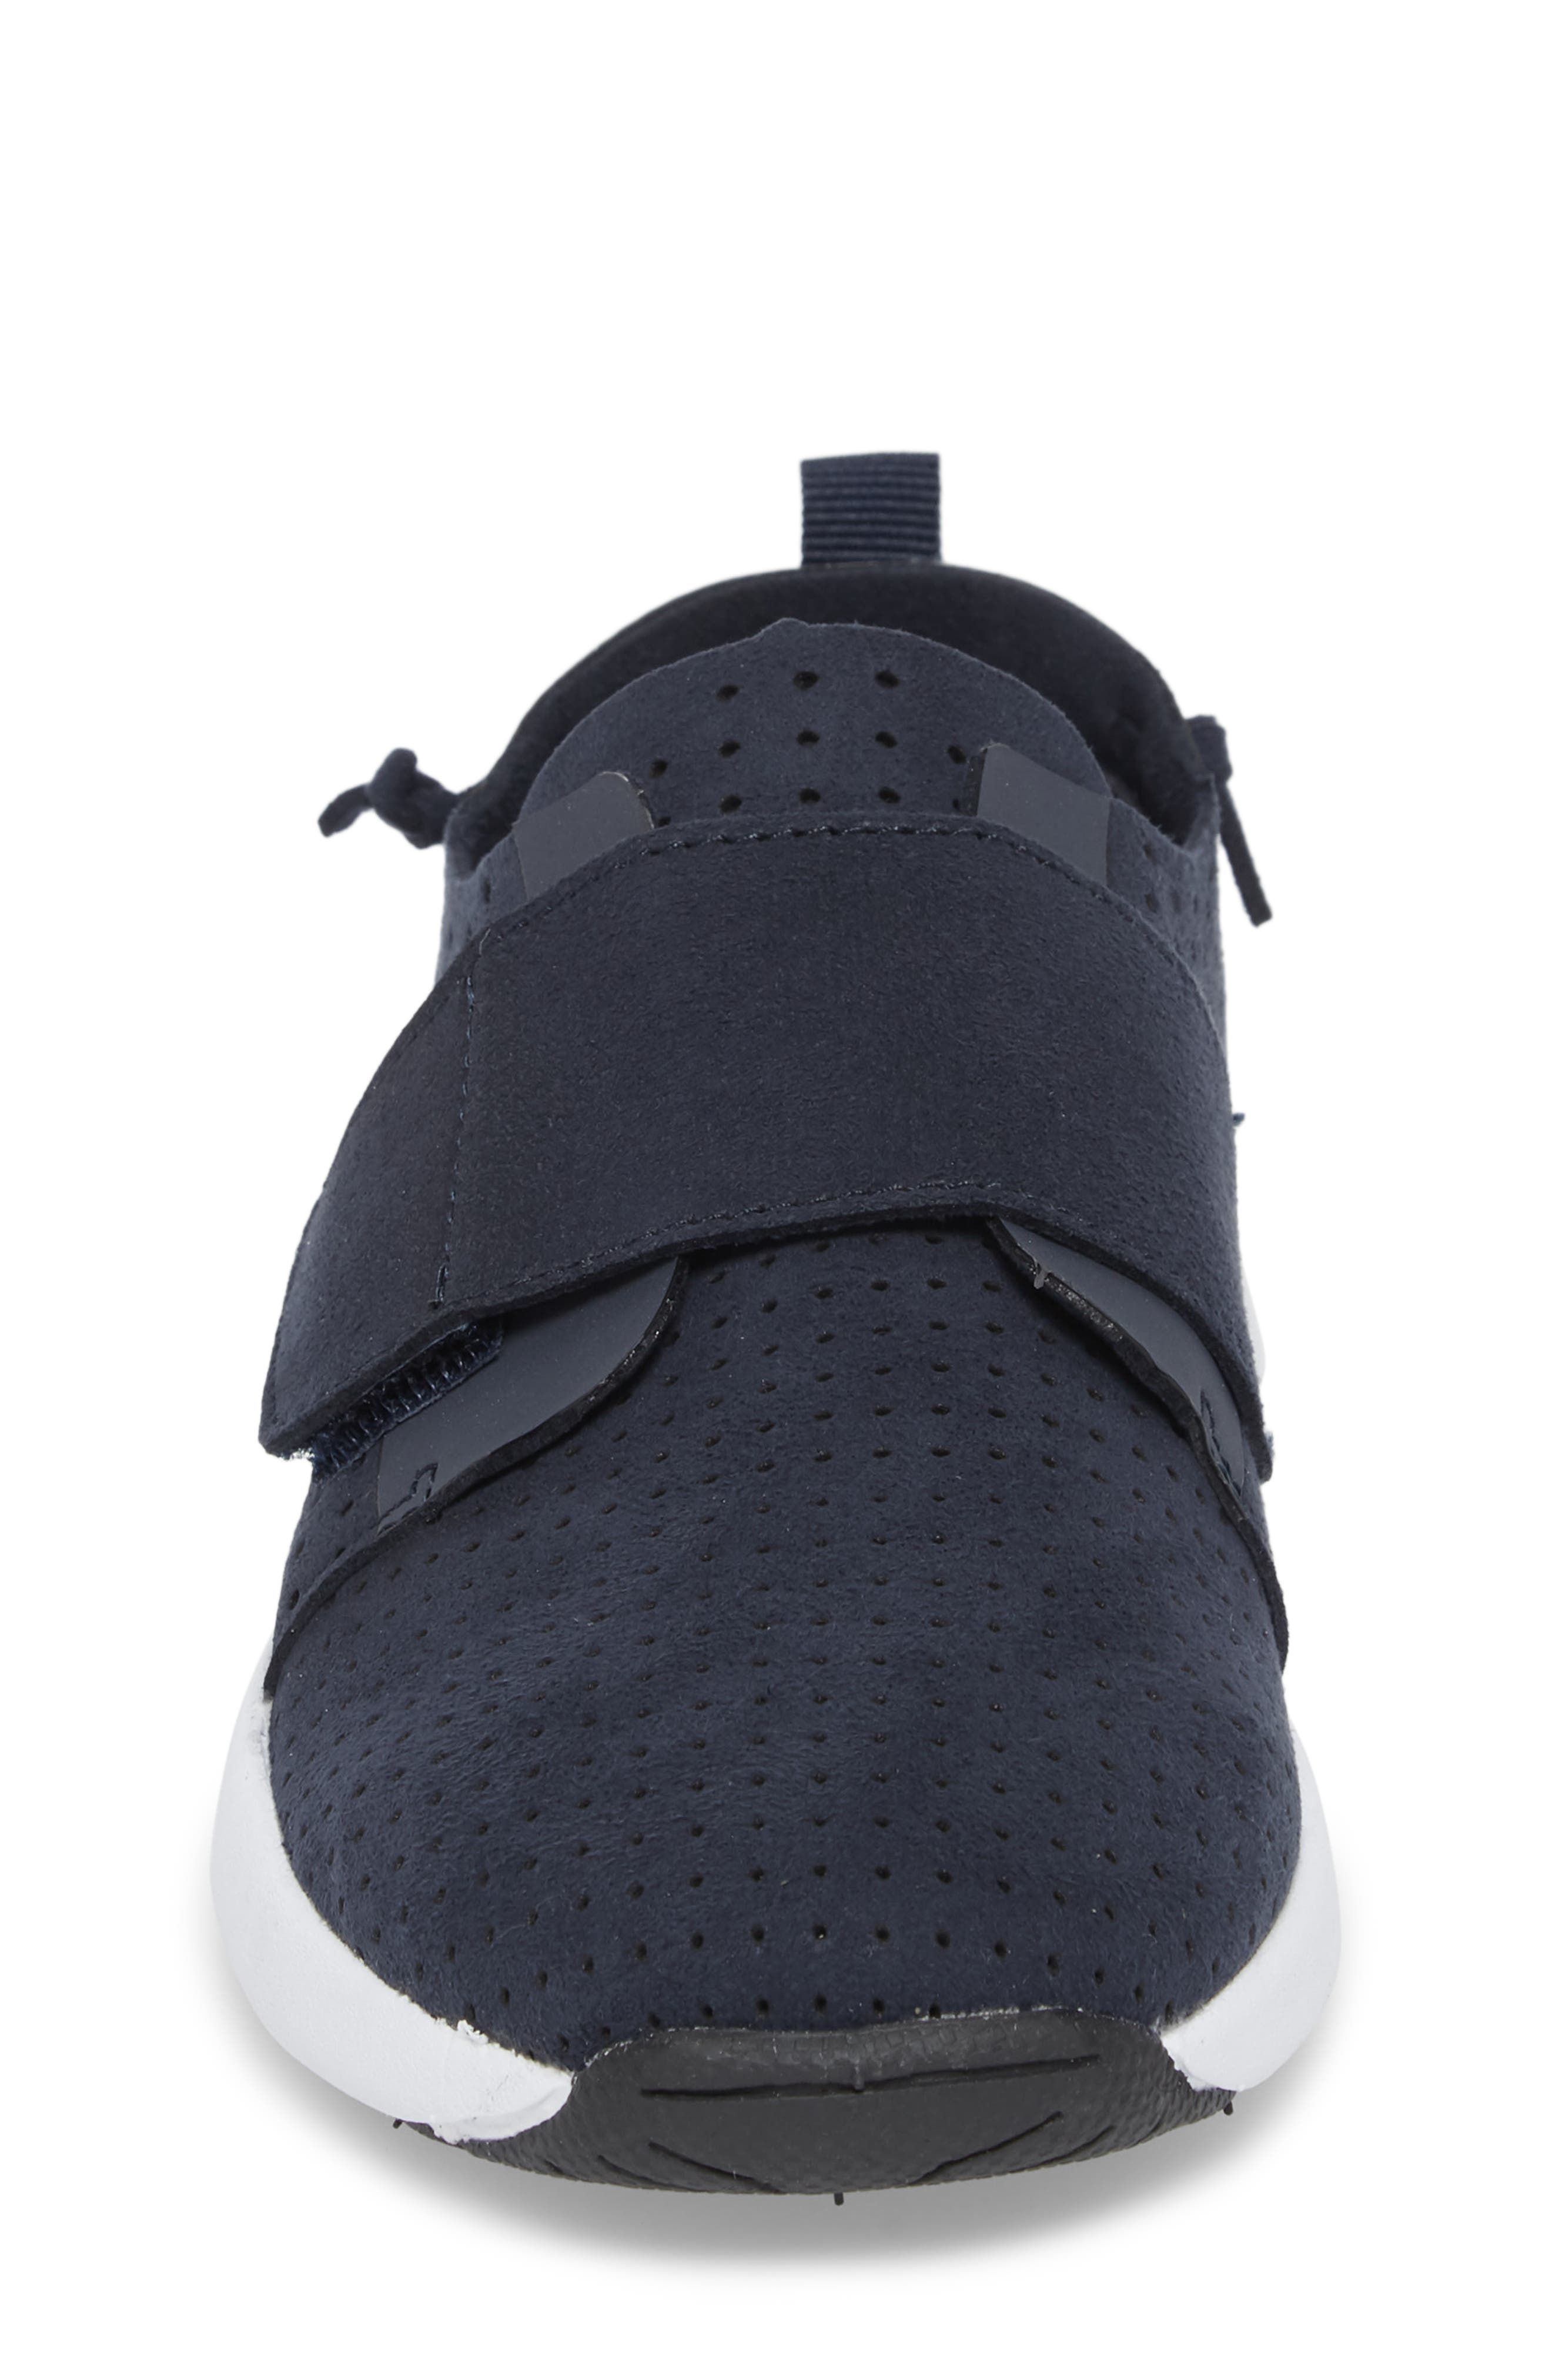 Brixxnv Perforated Sneaker,                             Alternate thumbnail 4, color,                             NAVY